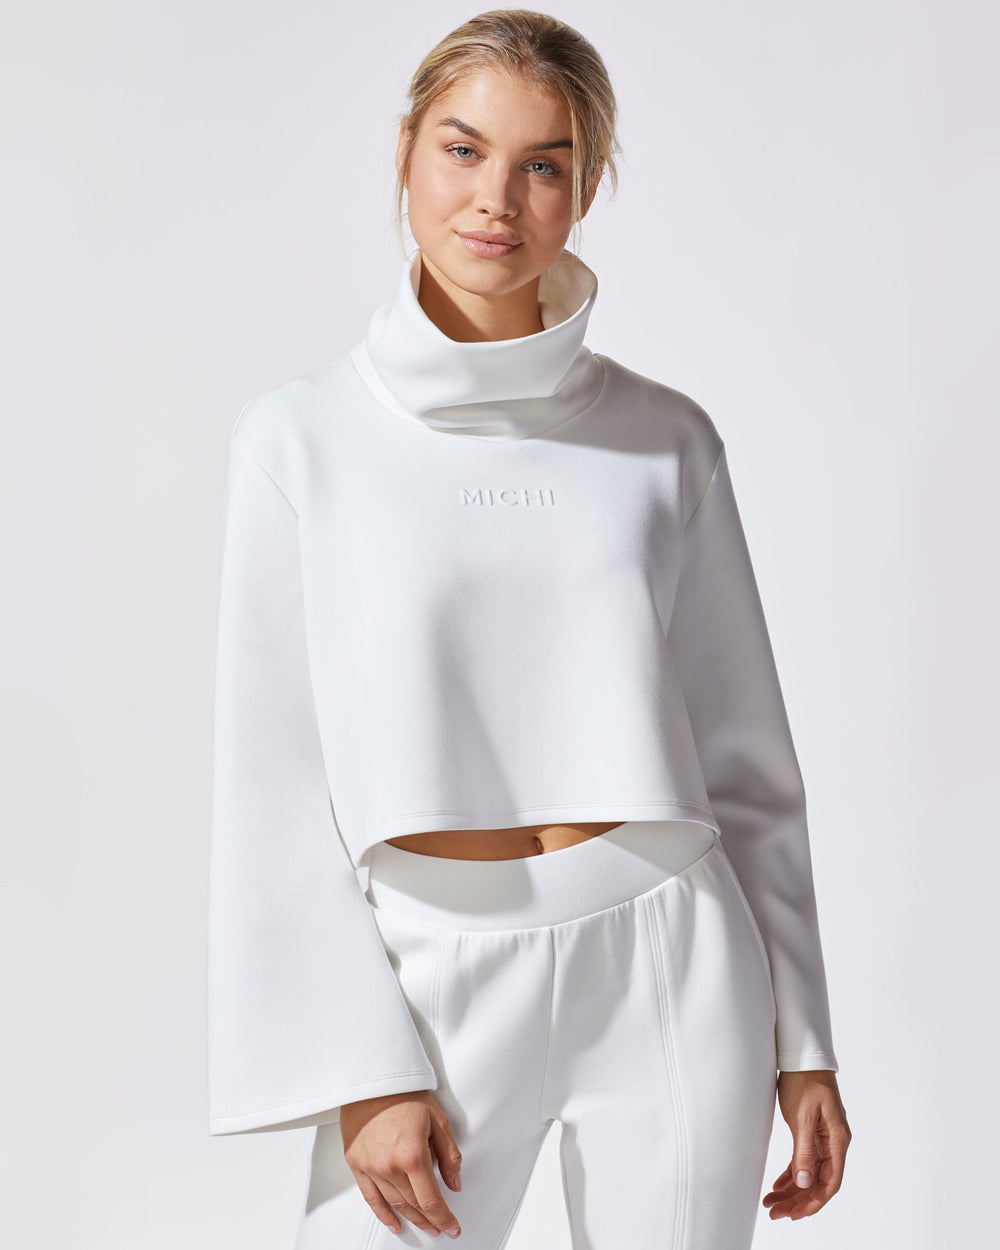 Lair Sweater - Ivory